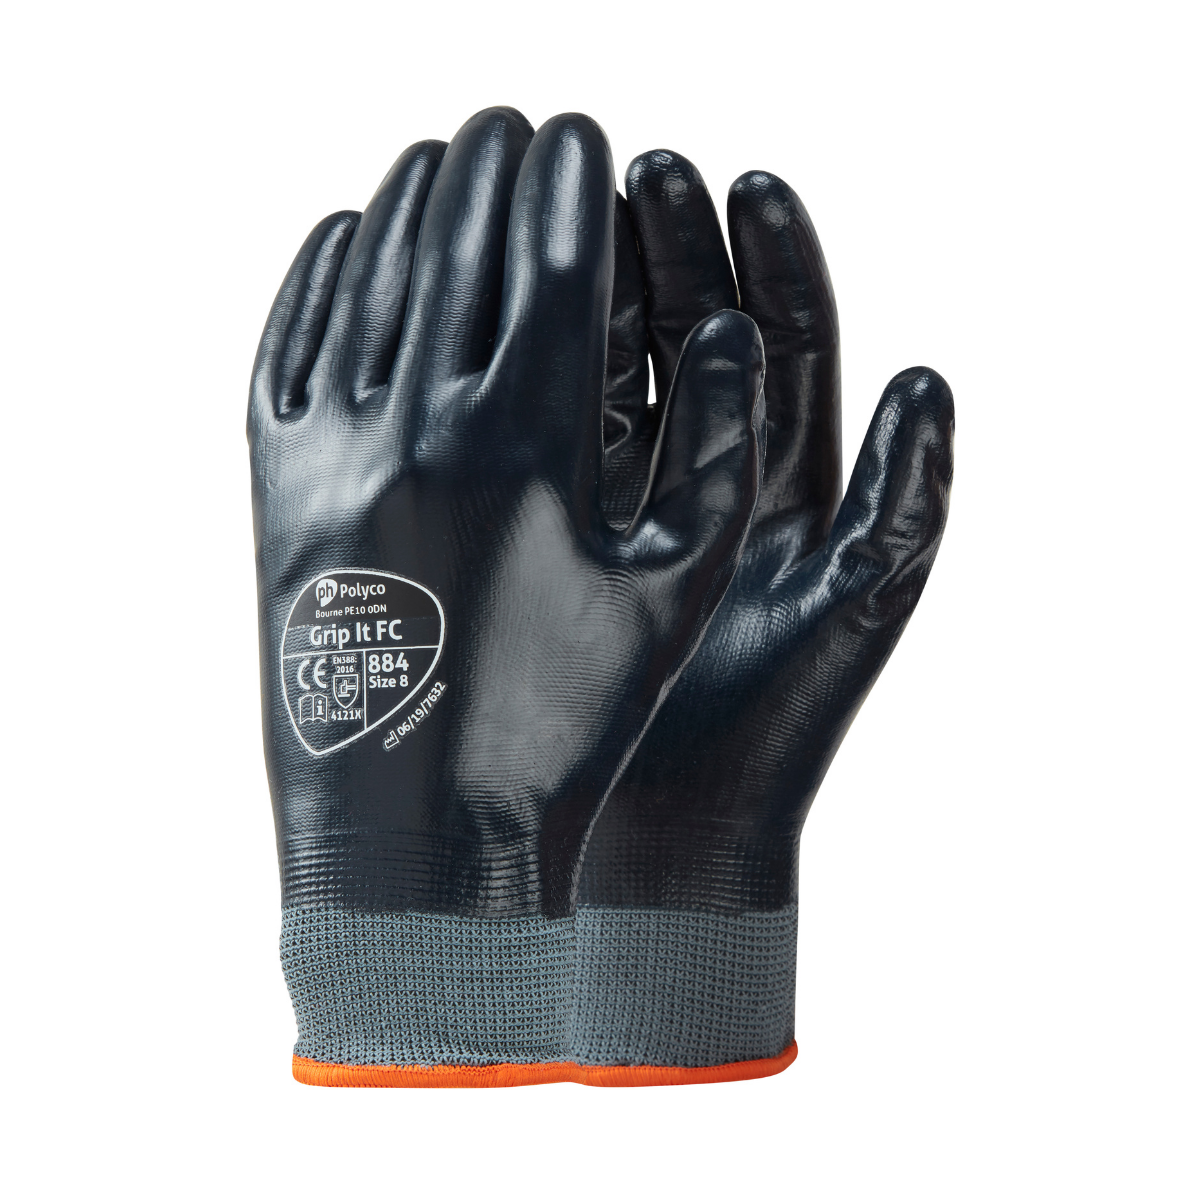 GL8840_Grip It Fully Coated Nitrile Gloves